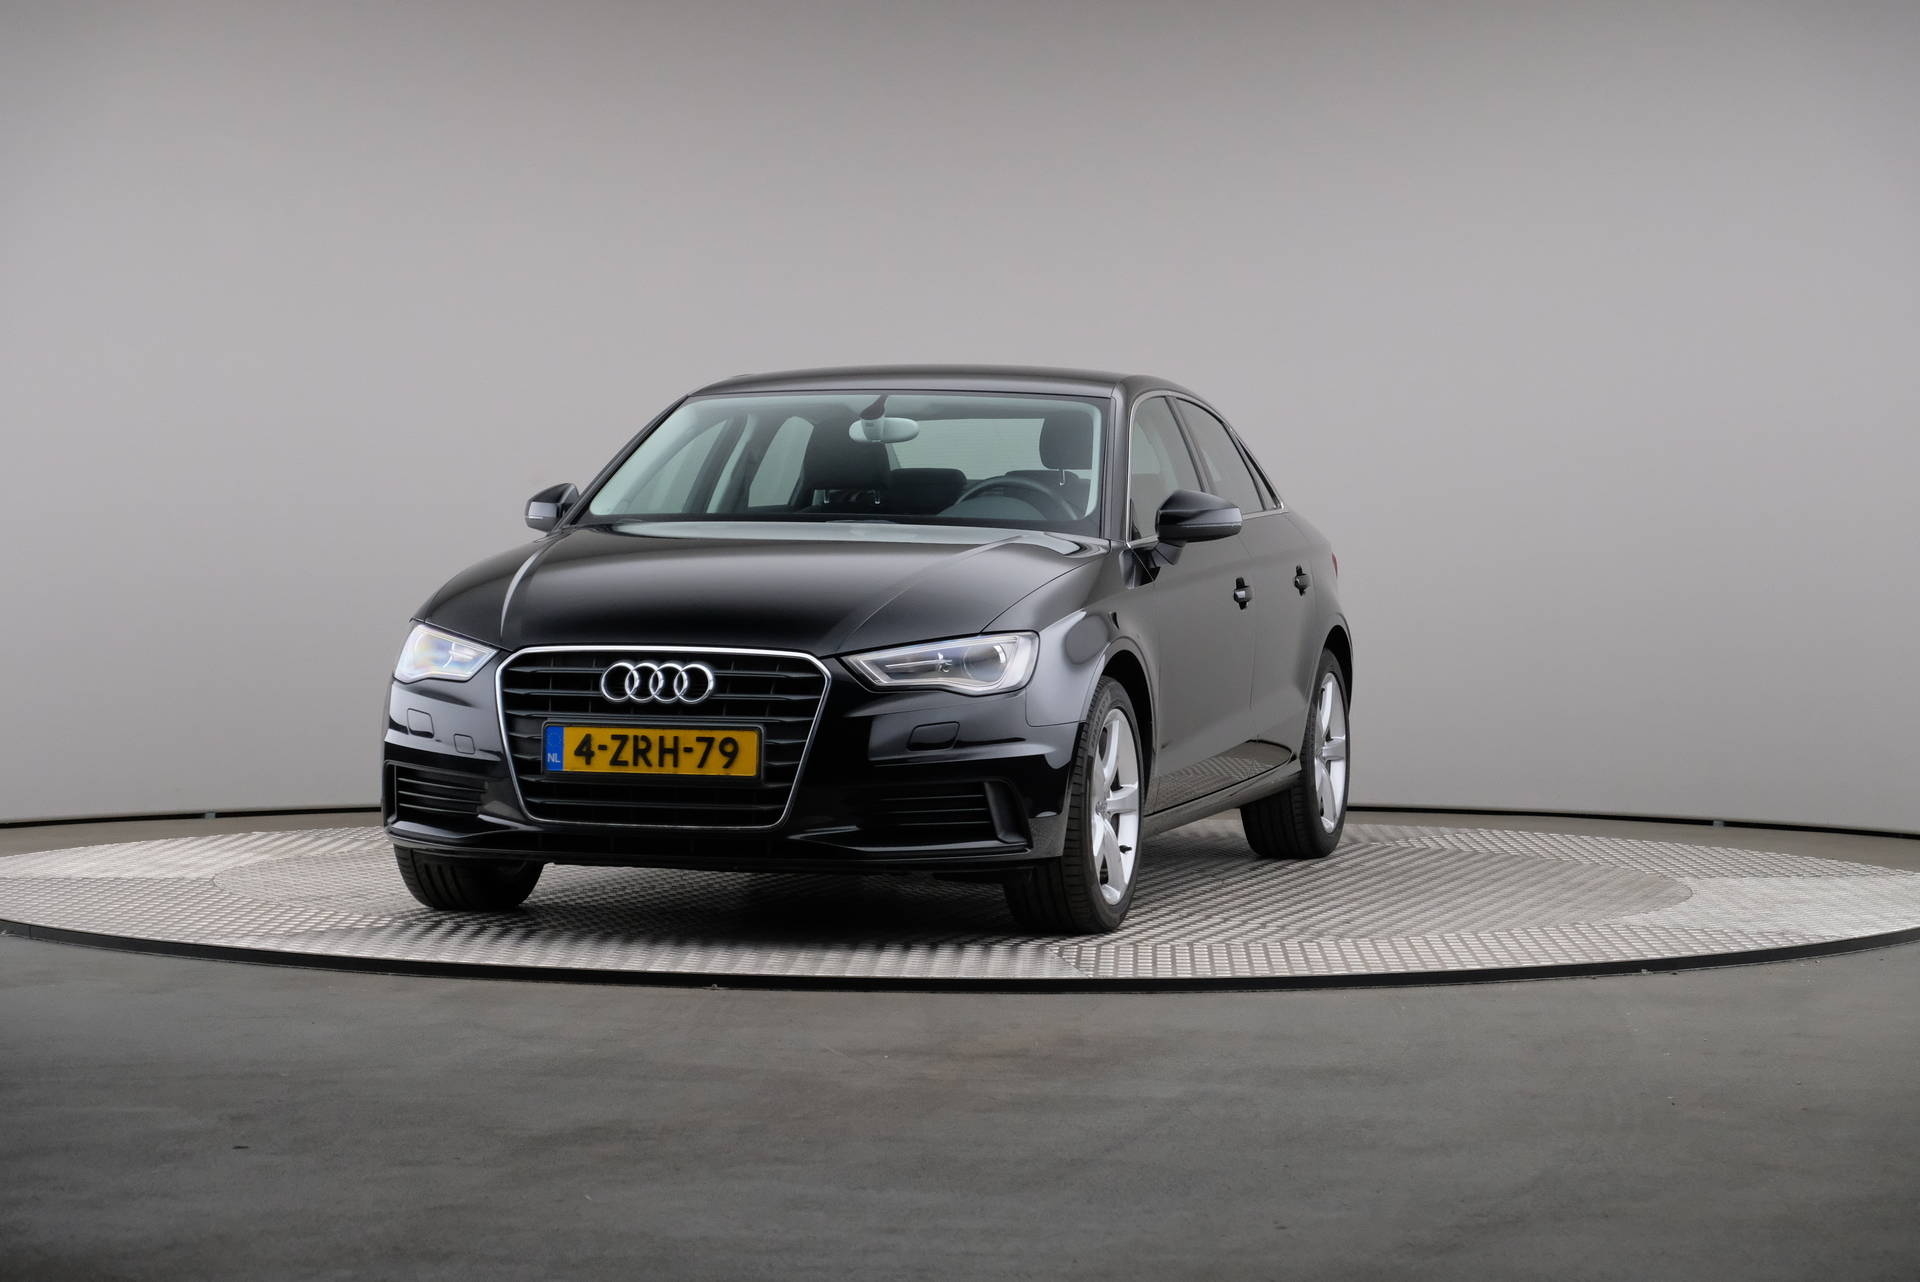 Audi A3 Limousine 1.6 TDI Attraction Pro Line Plus, Navigatie, Xenon, 360-image34